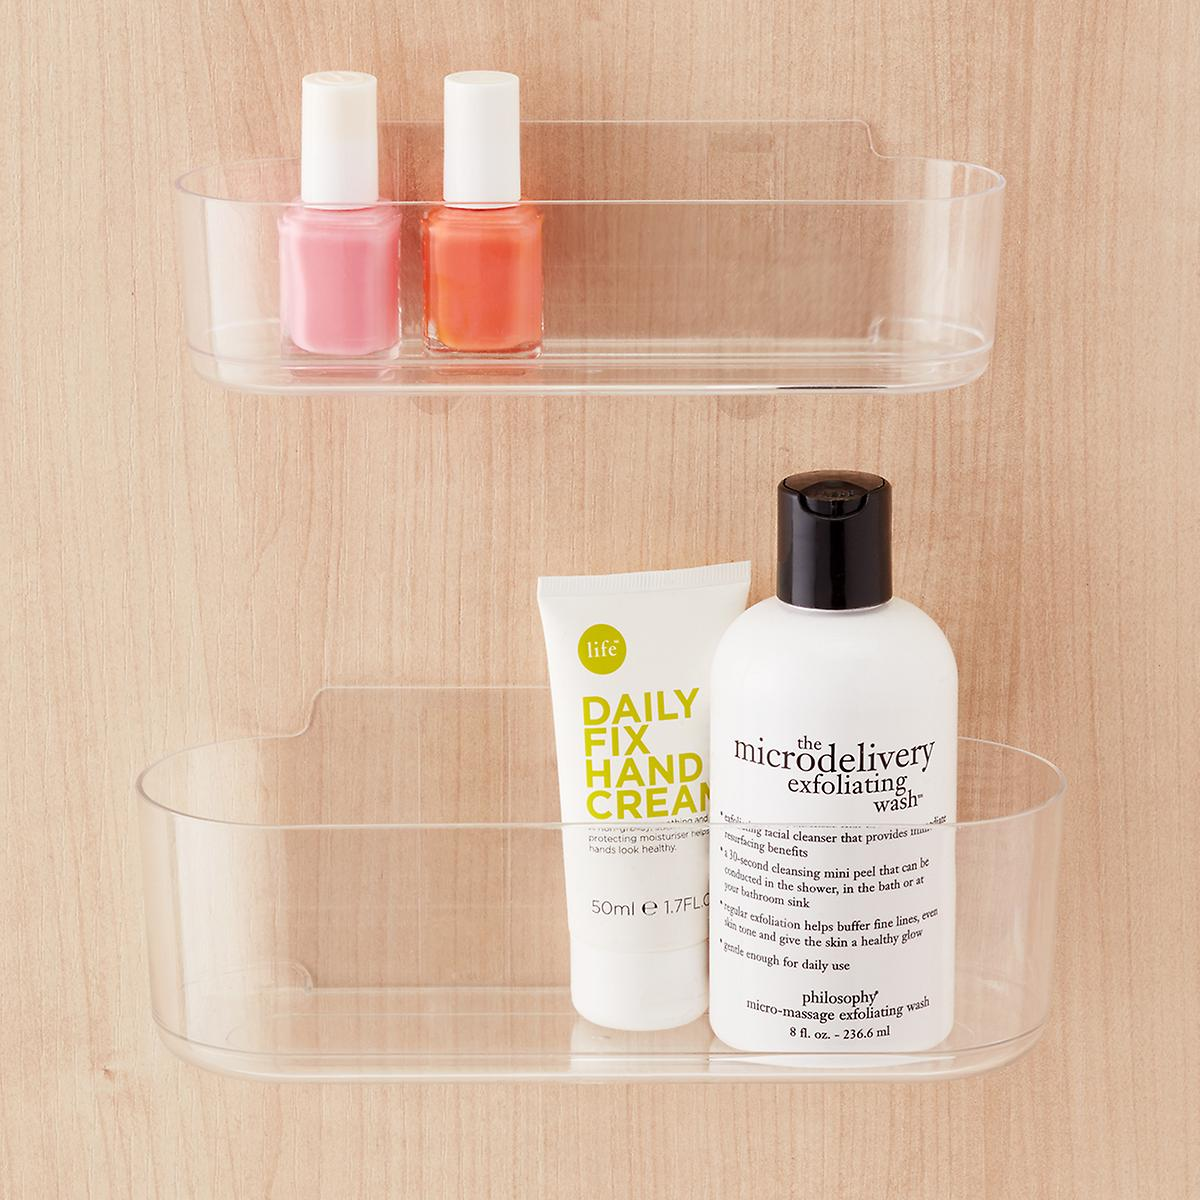 3m command clear caddies the container store for Bathroom ideas 3m x 3m